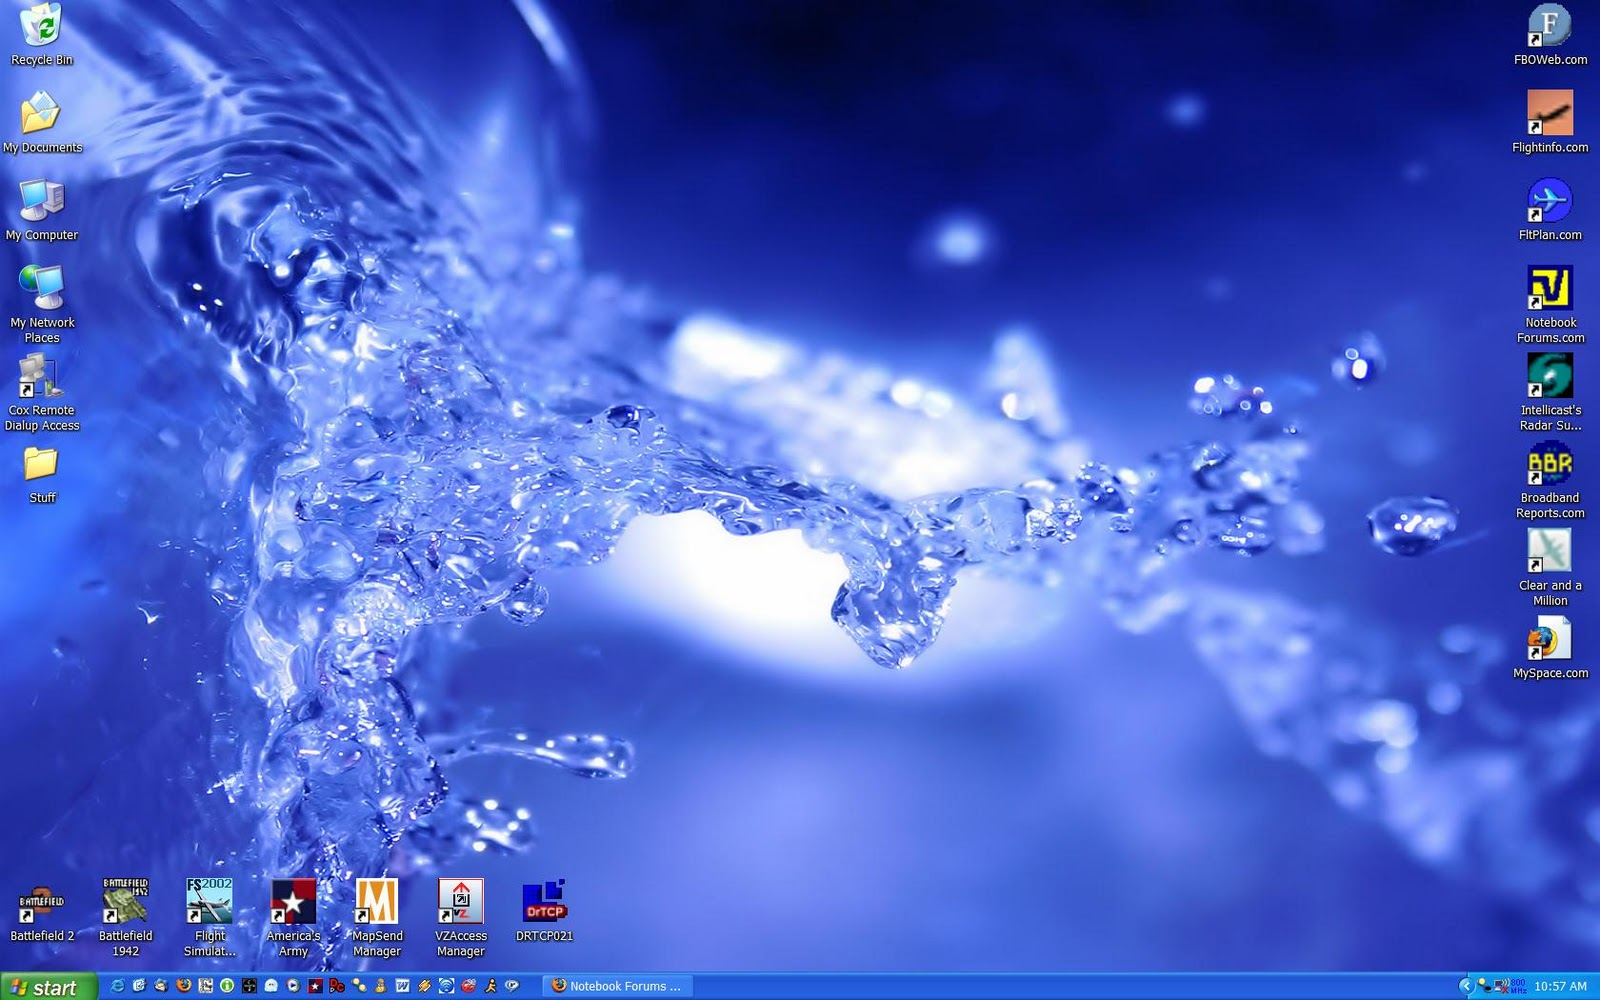 http://2.bp.blogspot.com/-fjiFK206xAg/TY-ePxGIWtI/AAAAAAAAA6w/vw6zXSb-Th0/s1600/Acer+Laptop+wallpaper+7.jpg